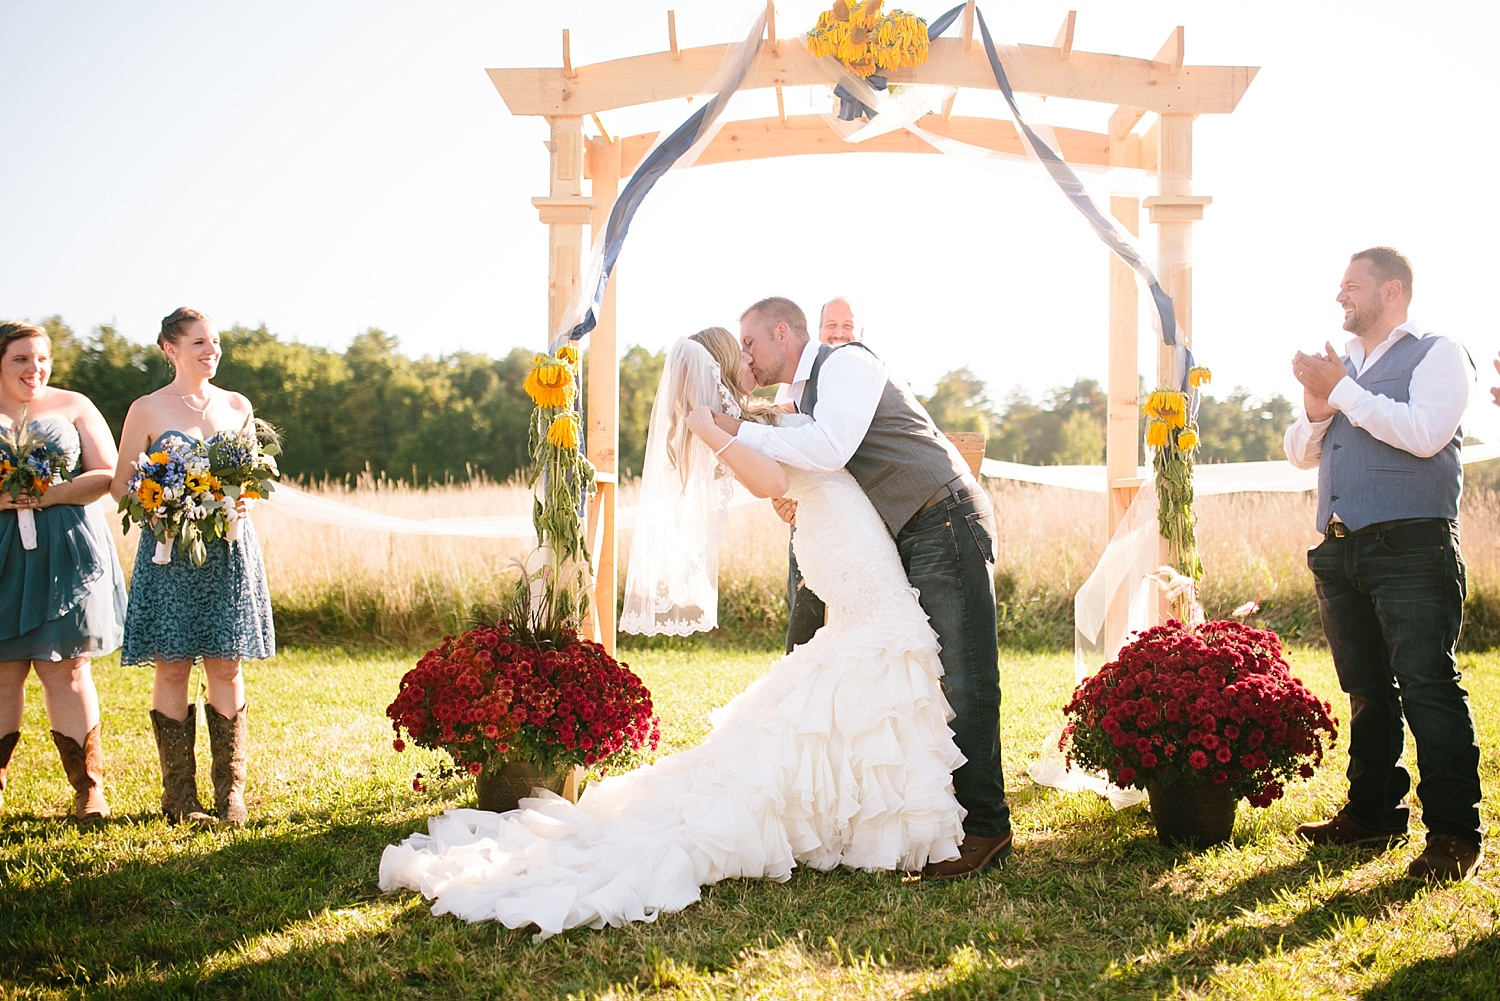 jennyryan_newbeginnings_farmstead_upstatenewyork_wedding_image094.jpg